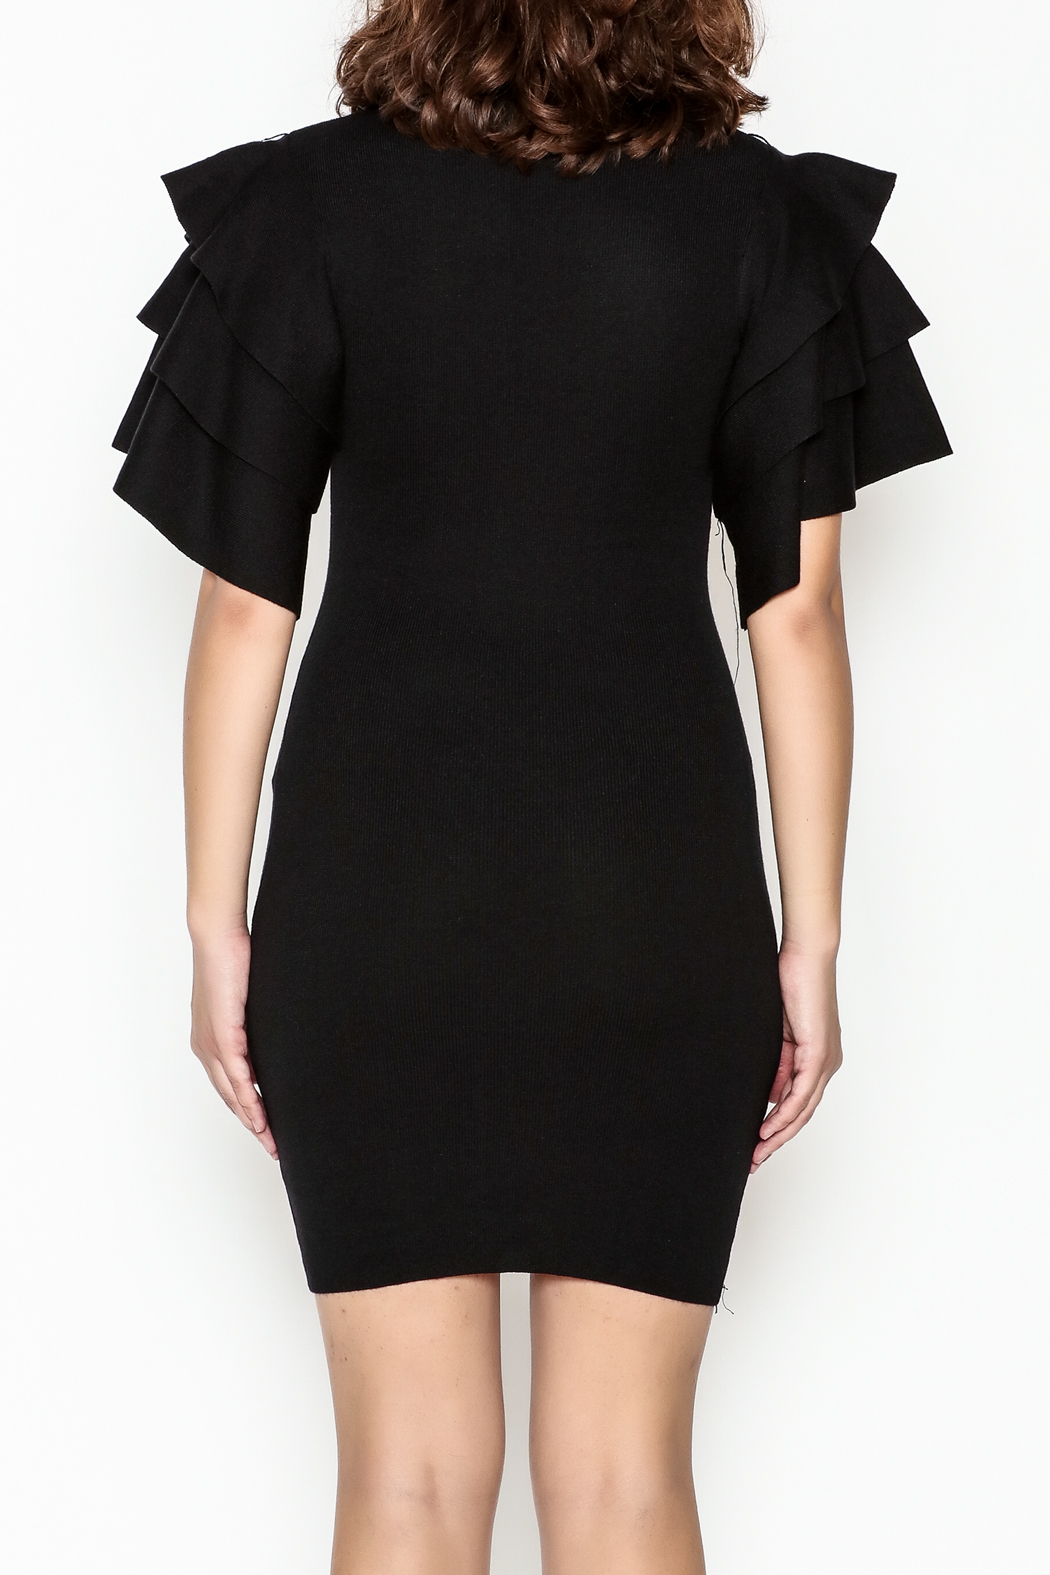 settle down Ruffle Sleeve Dress - Back Cropped Image